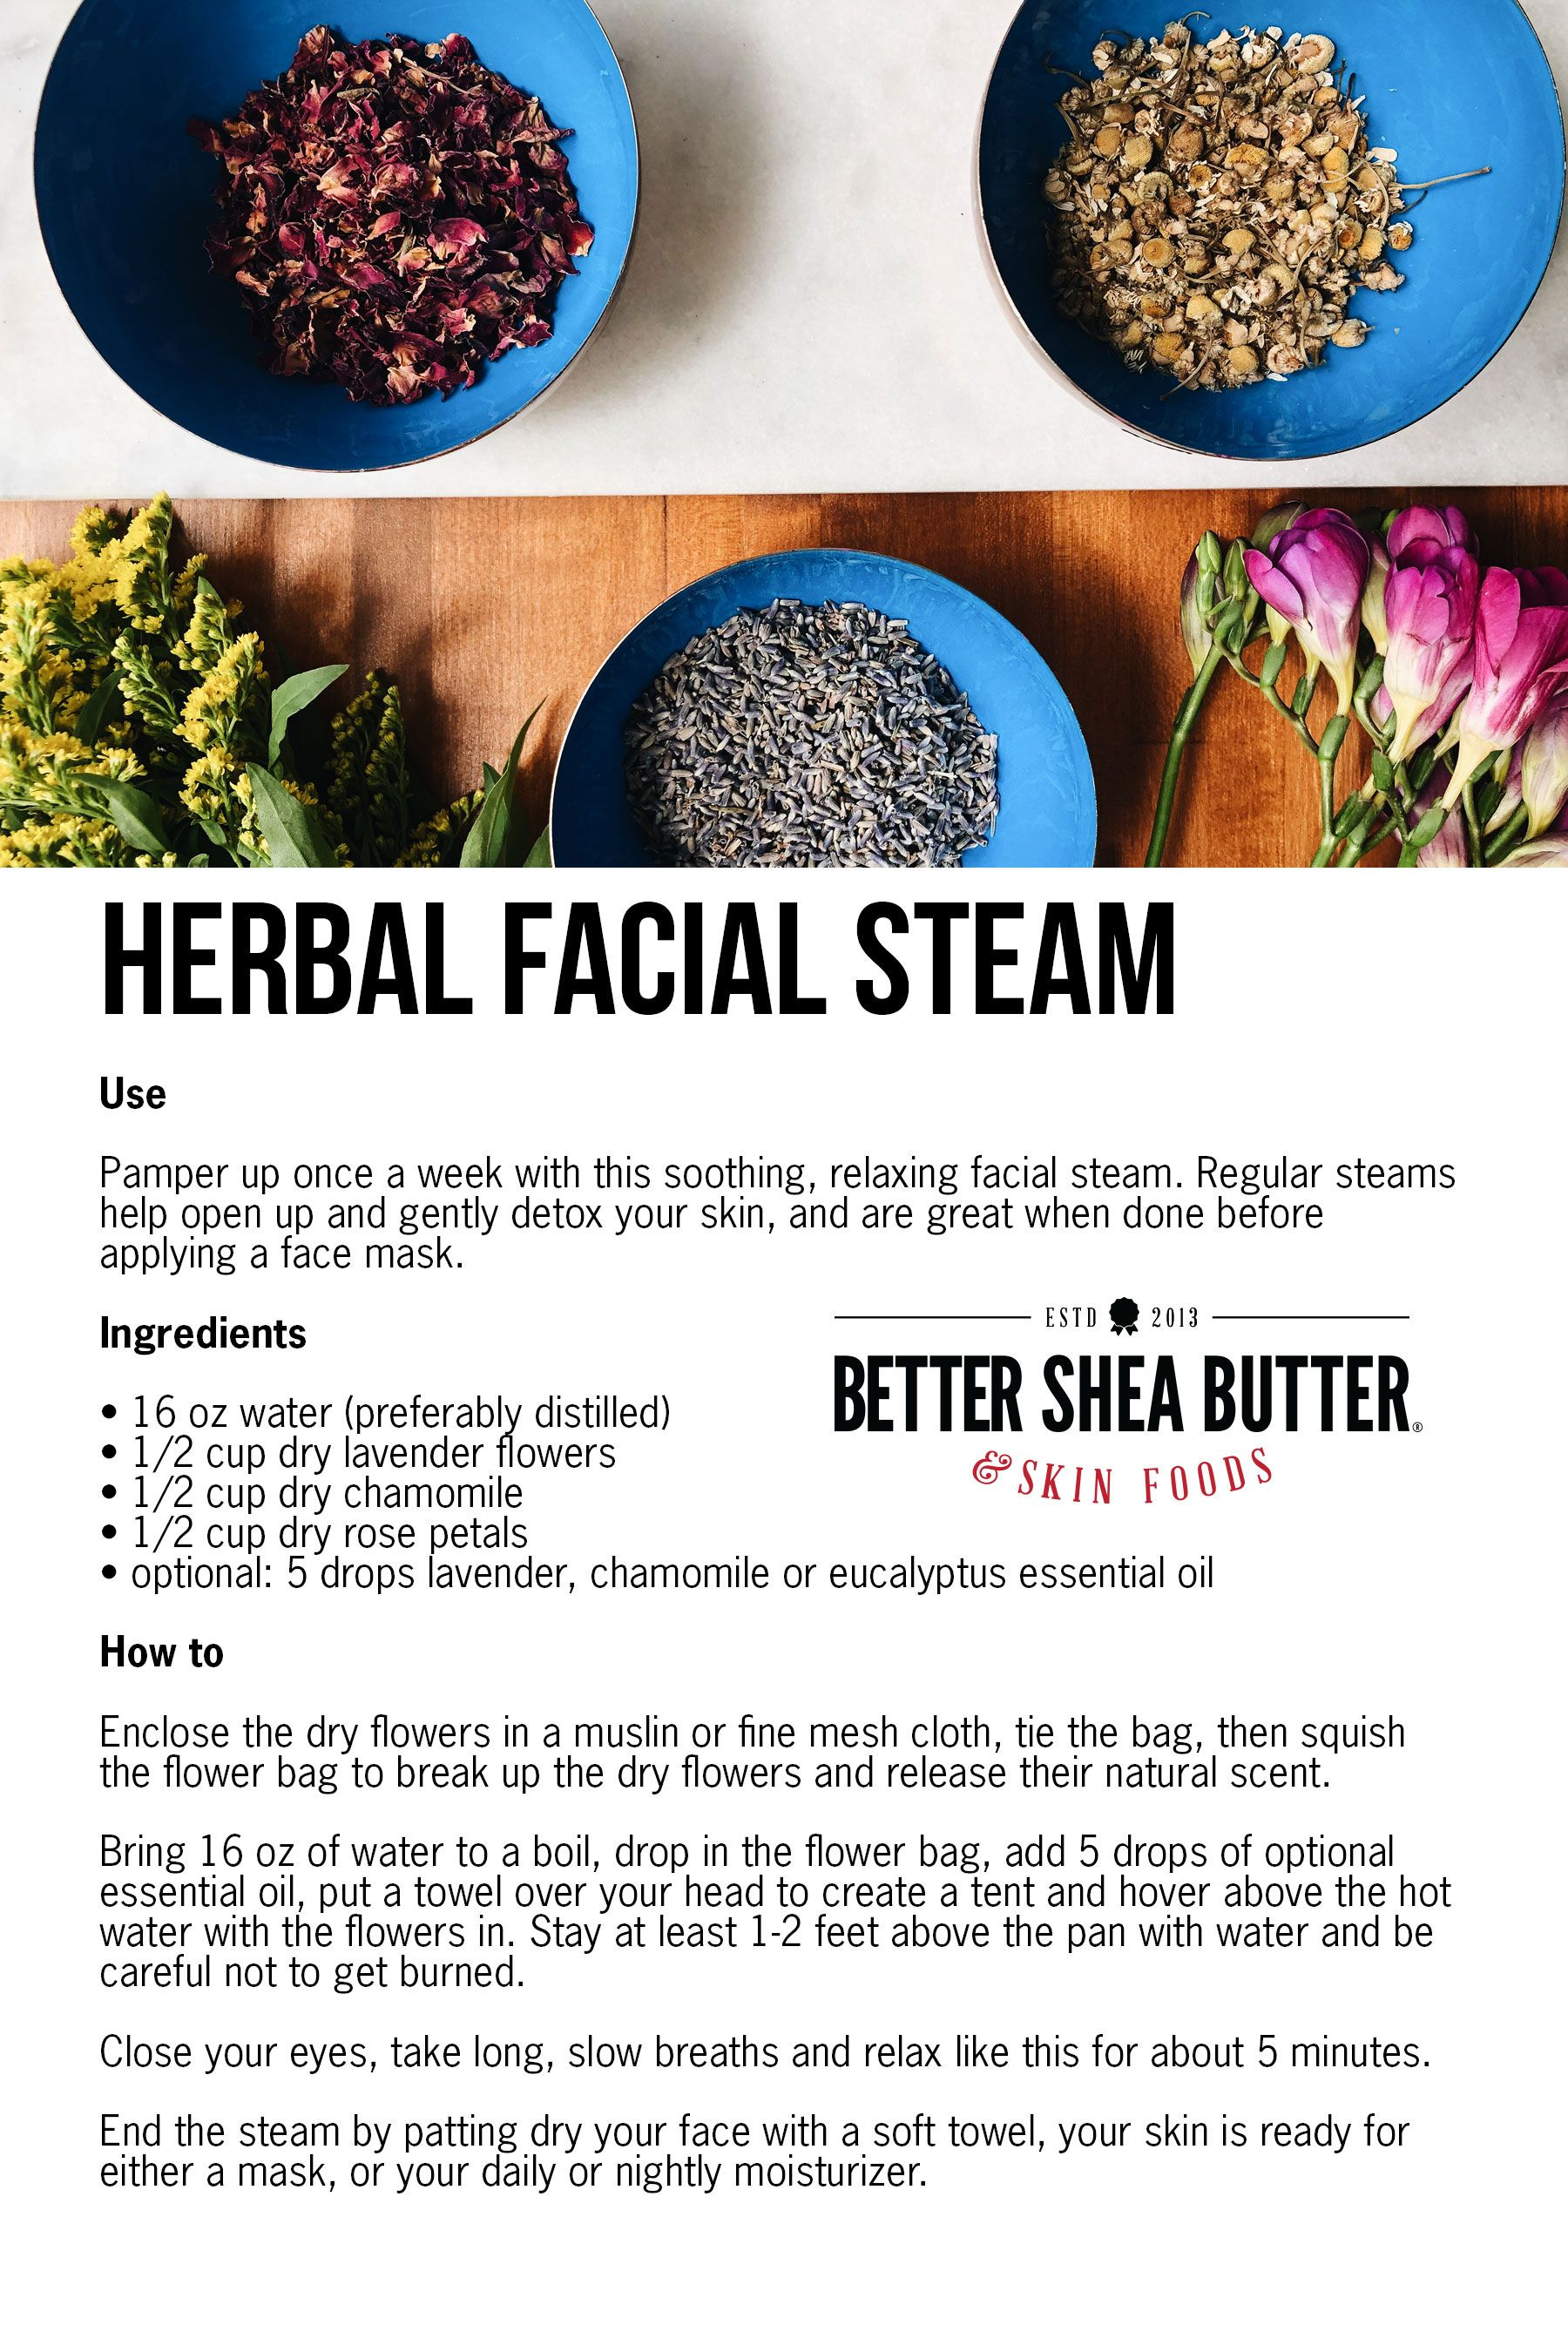 Photo of DIY Facial Steam w/ Dry Lavender, Chamomile, Rose